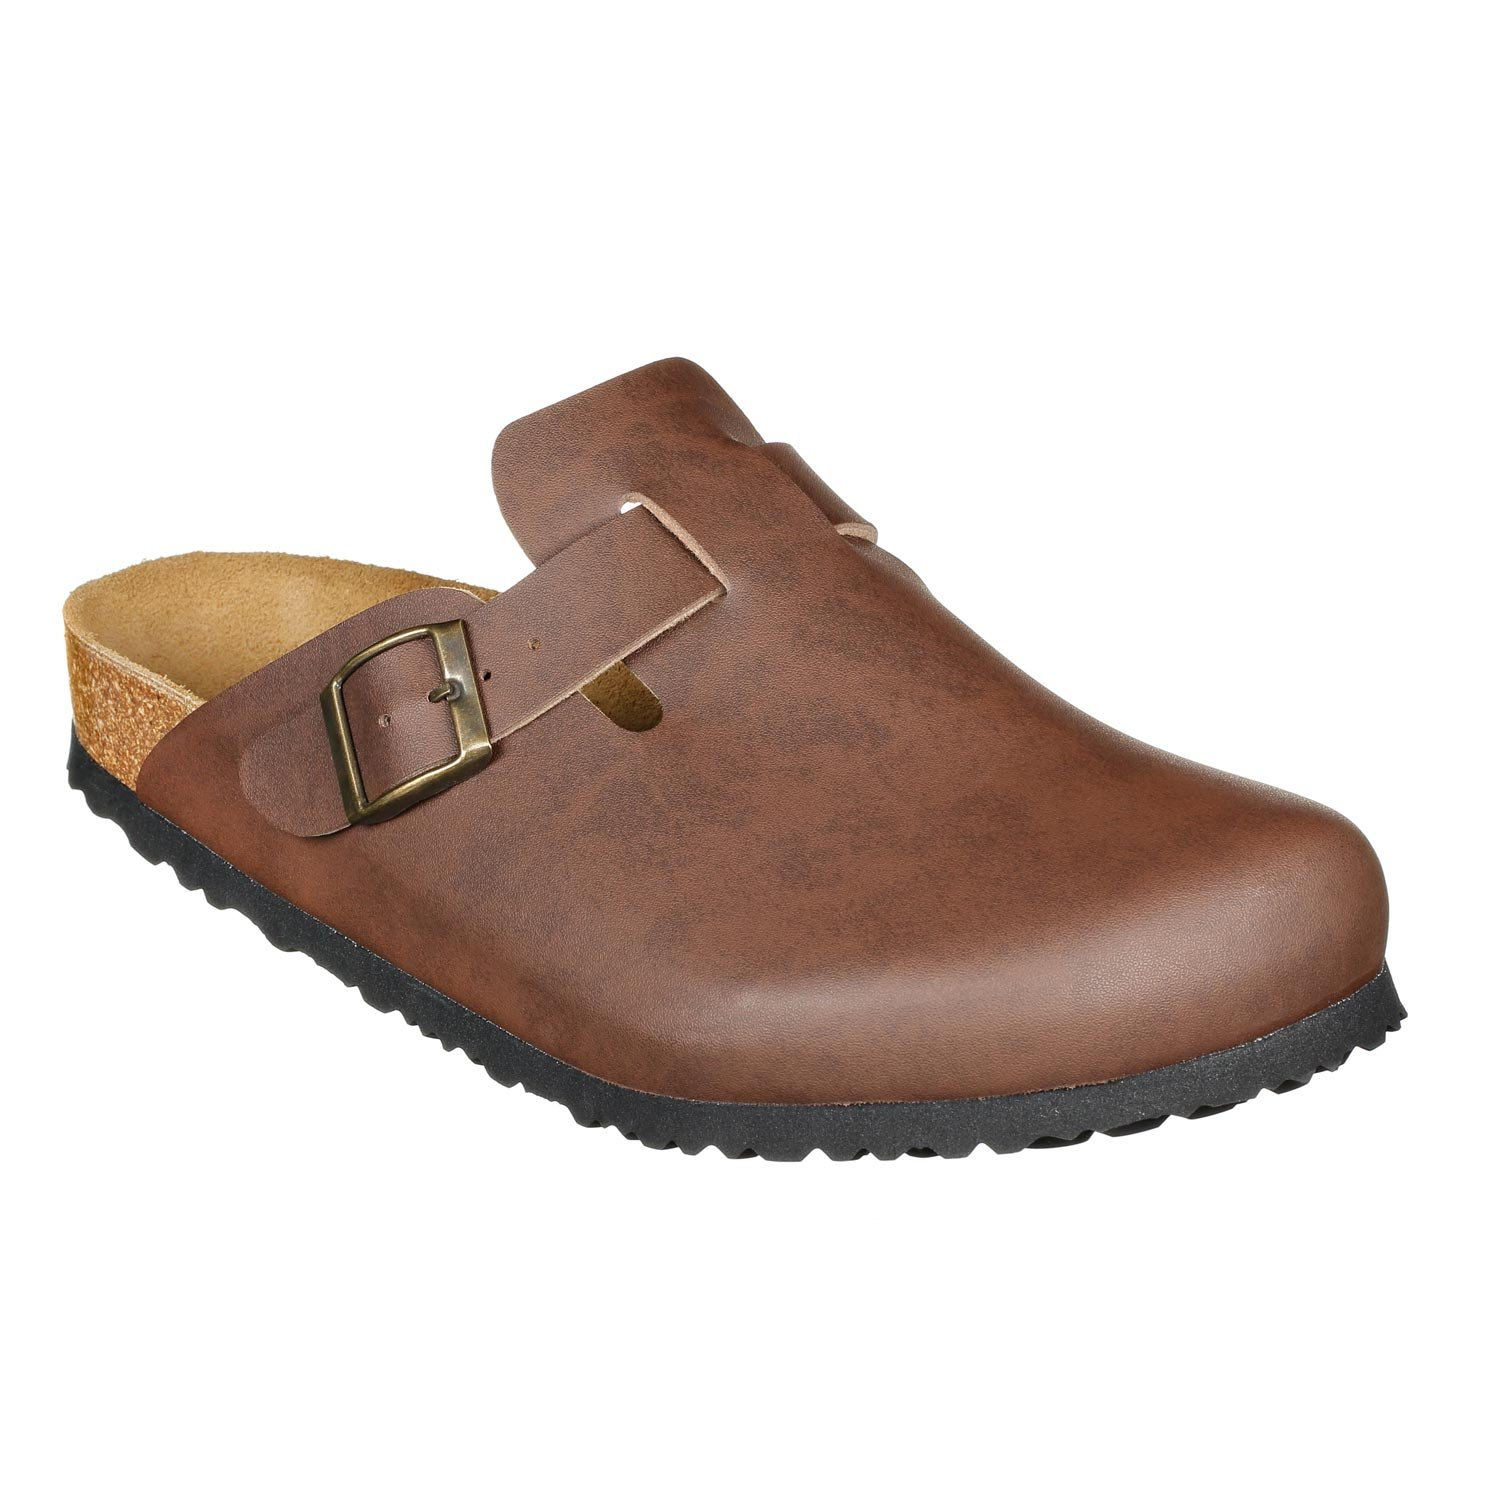 JOE N JOYCE Slippers Clogs Shoes Leatherette Regular - Mens and Womens Amsterdam Synsoft